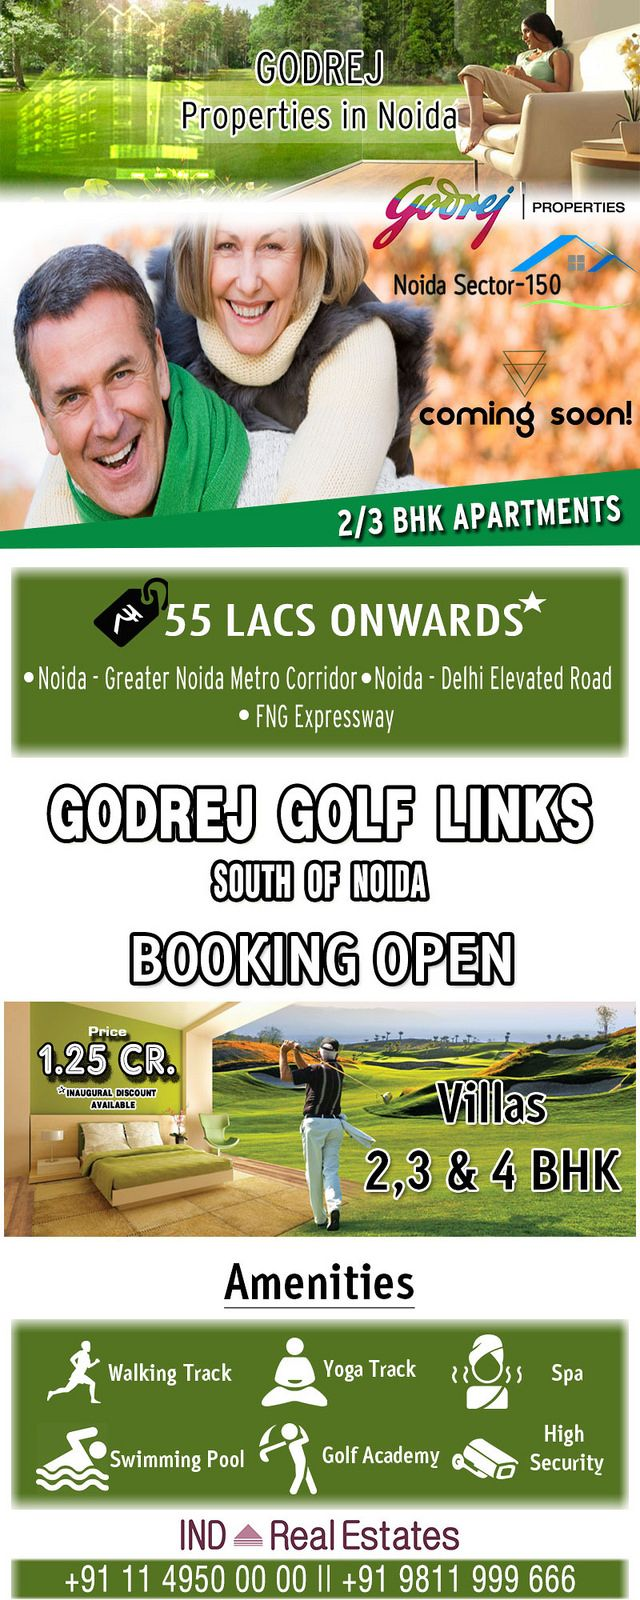 https://flic.kr/p/RJ91se | Godrej Properties | Godrej Properties presenting their new residential project nearby Noida Greater Noida Expressway, Sector 150 Noida & greater noida Sector 27, near Pari Chowk. Click here for more info: www.indrealestates.com/builder/godrej-properties/